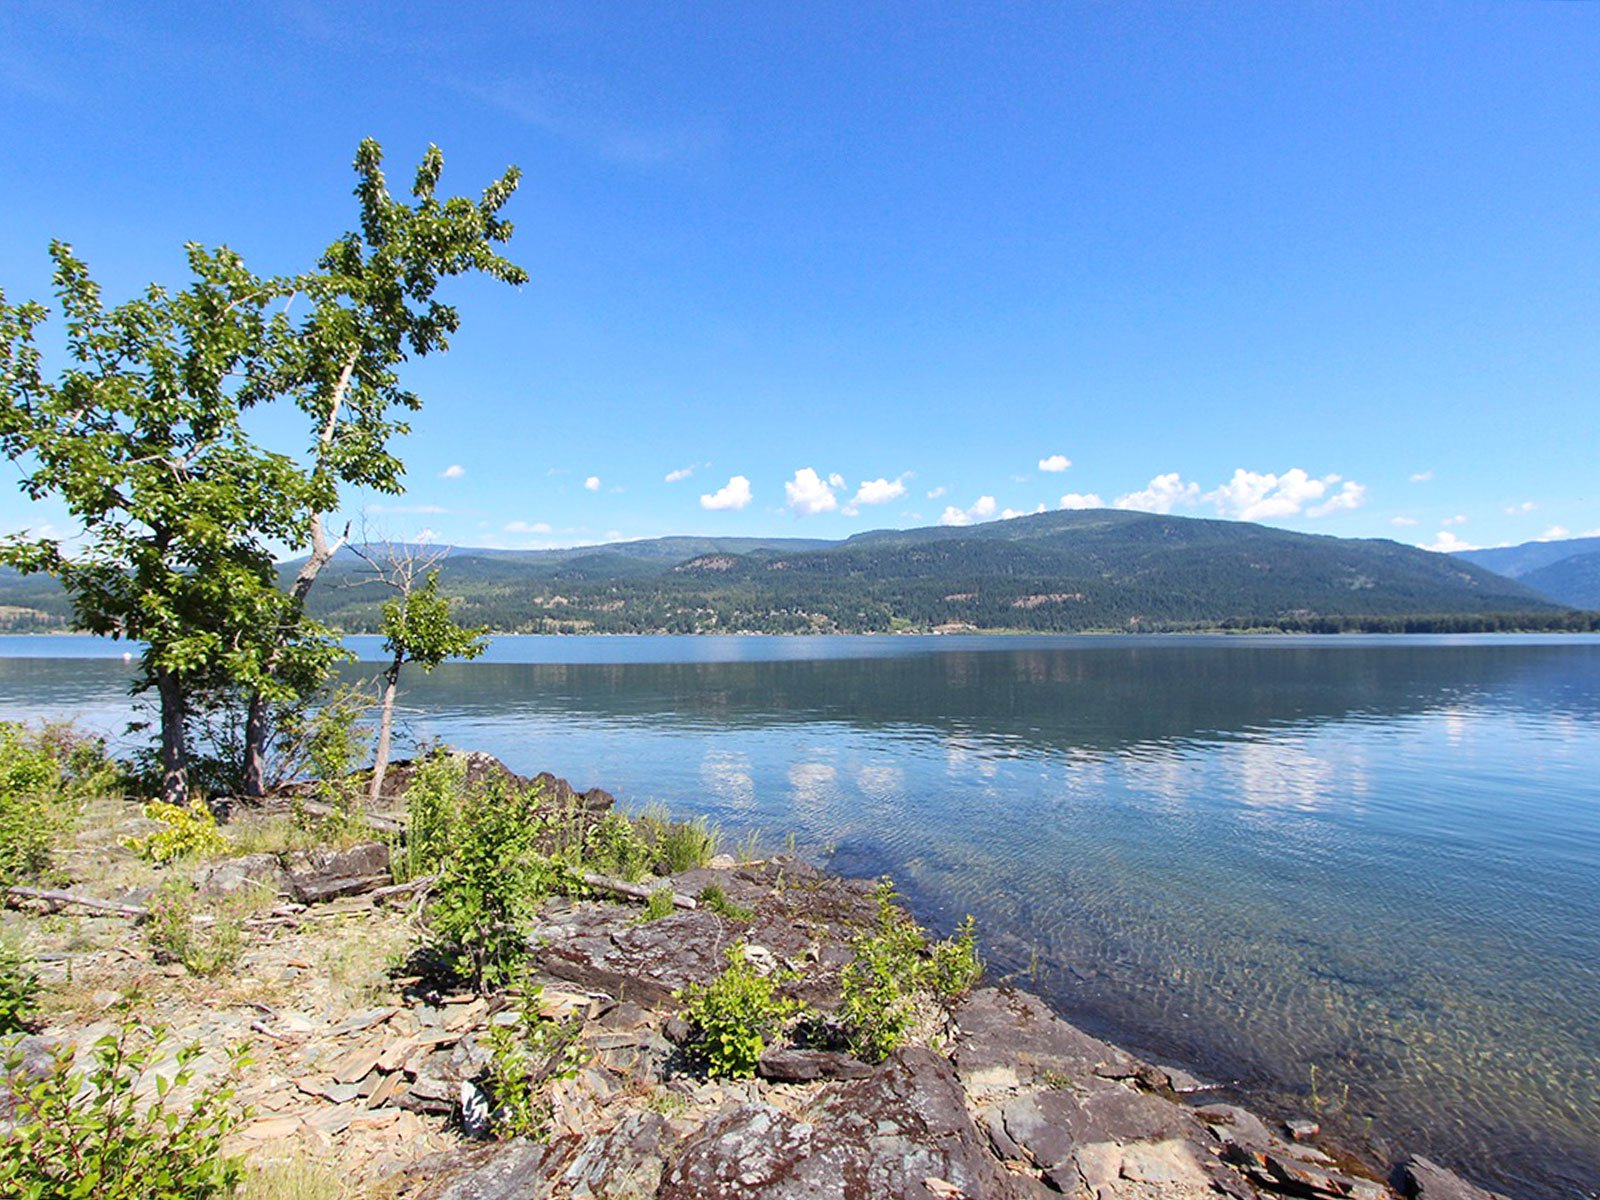 Photo 7: Photos: 663 Waverly Park Frontage Road in Sorrento, BC: Land Only for sale (Sorrento)  : MLS®# 10186241